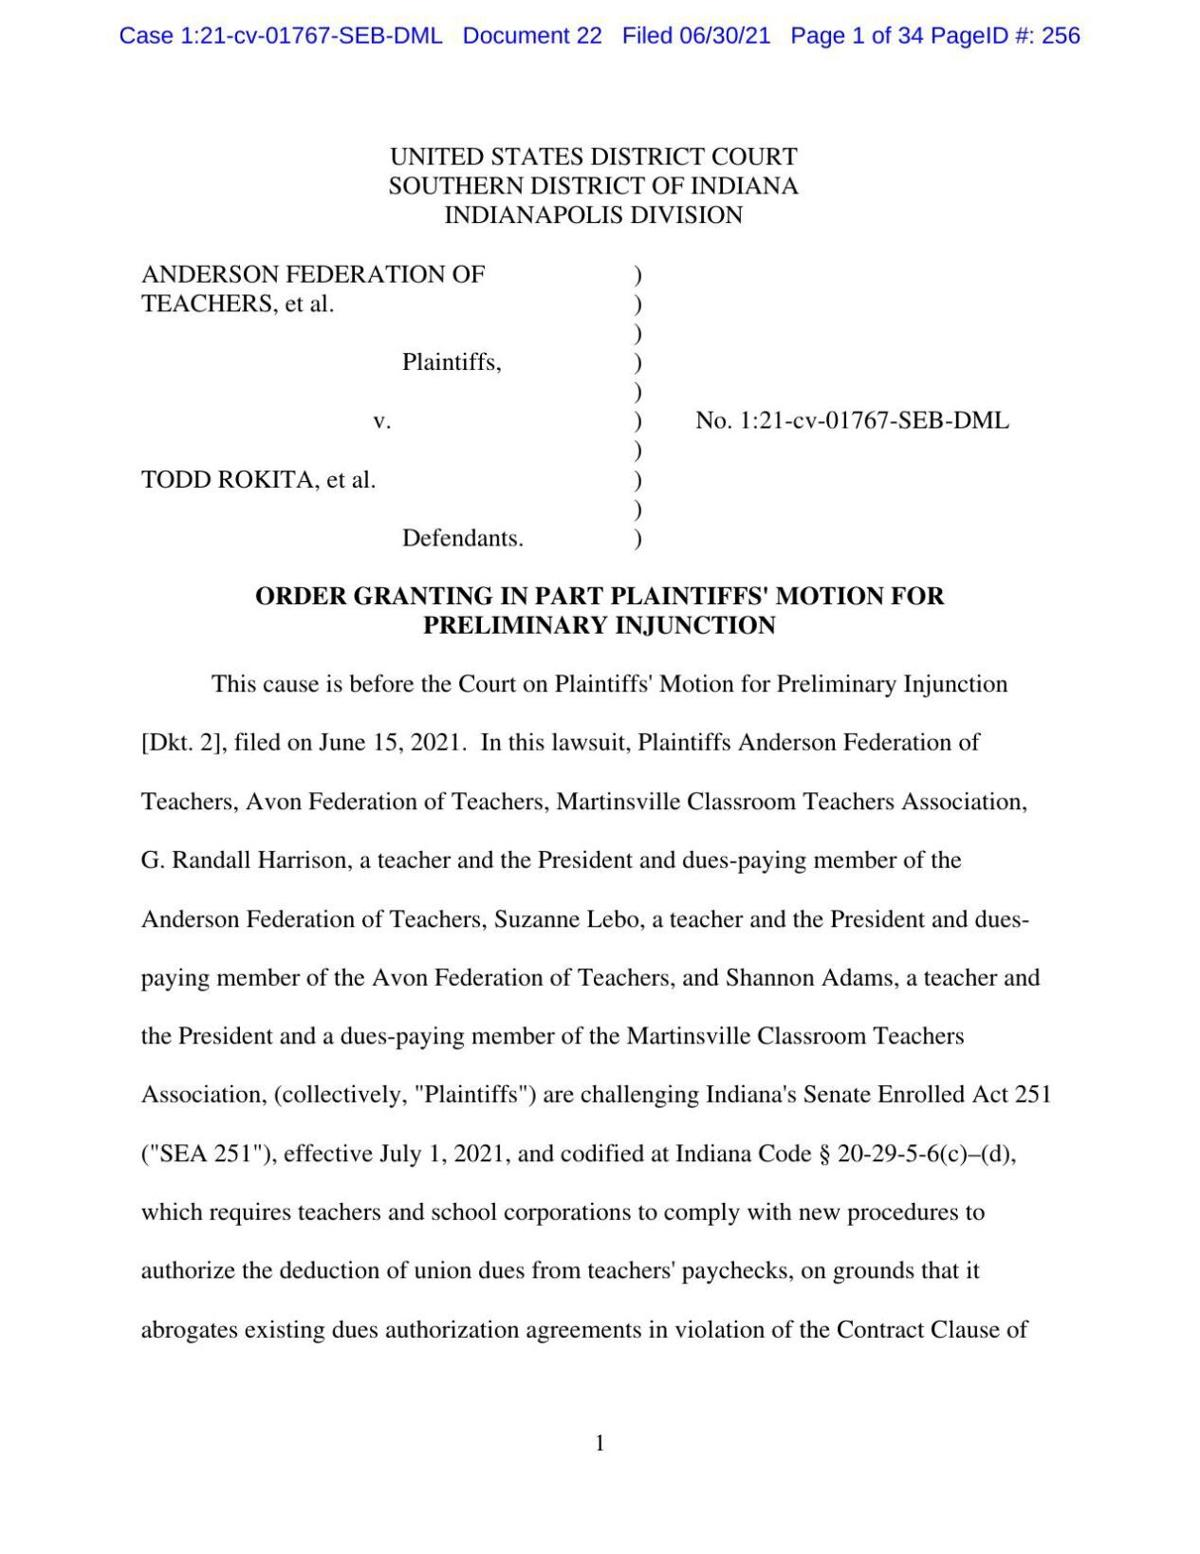 Anderson Federation of Teachers v. Rokita ruling of U.S. District Court